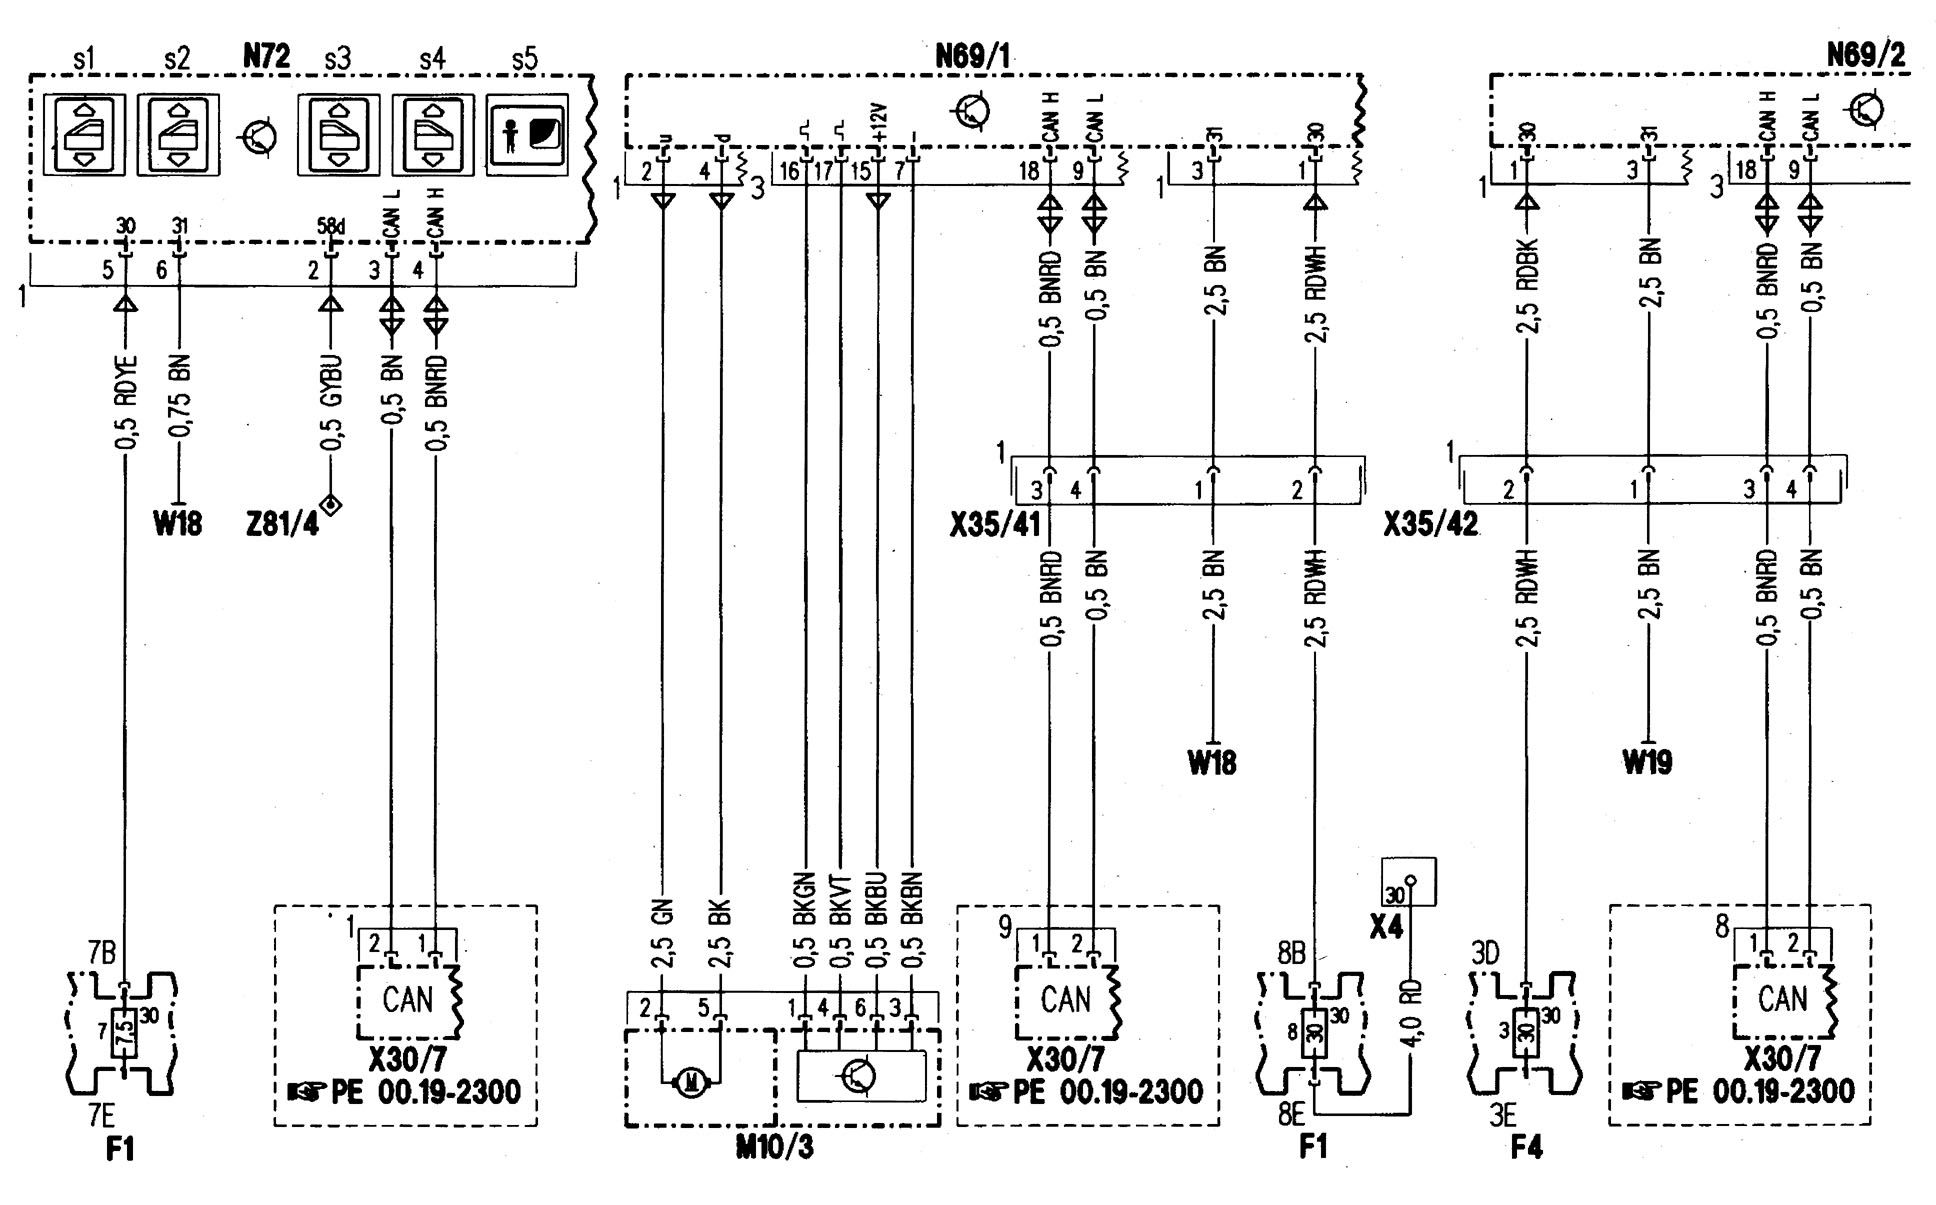 Mercedes Benz C280 1998 Wiring Diagrams Power Windows Volvo 240 Ke Light Diagram Part 1